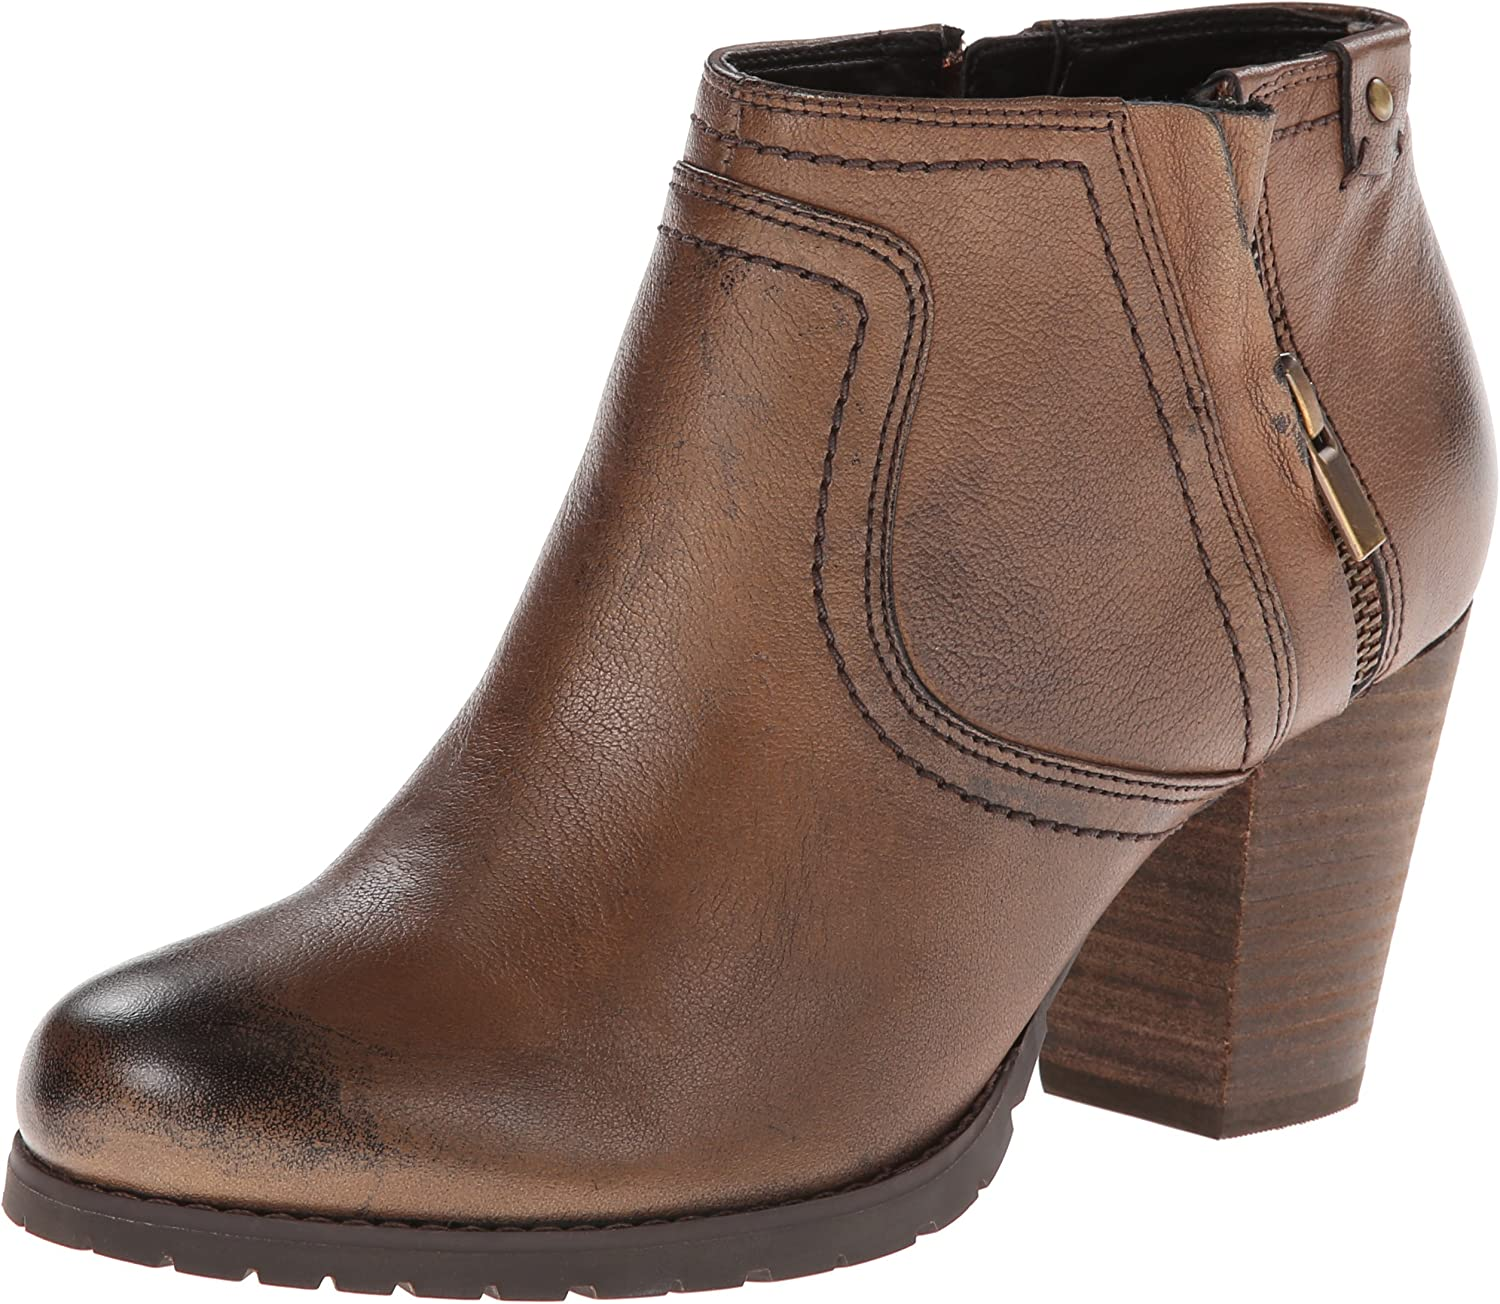 Clarks Women's Mission Halle Zipper Pull On Casual Boot